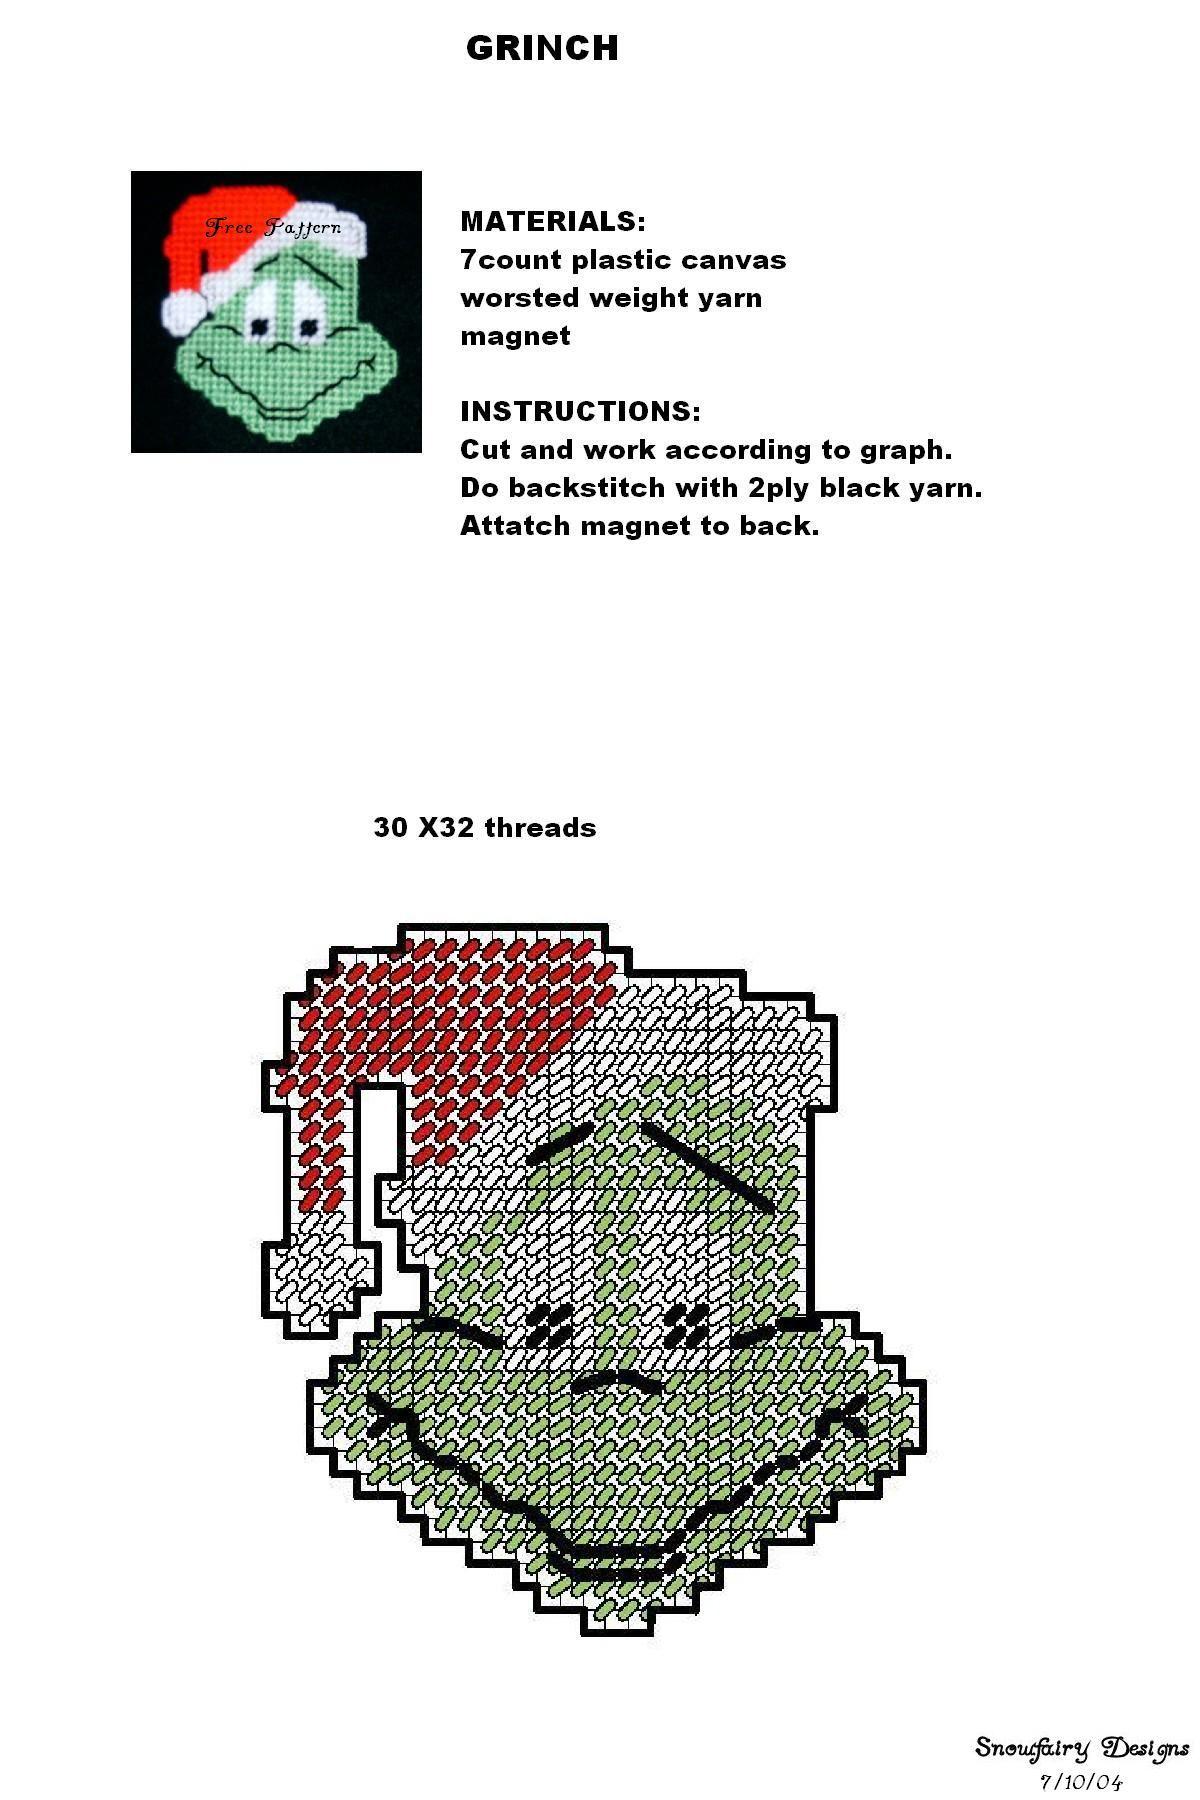 plastic canvas grinch magnet pattern. I bet I could do something ...